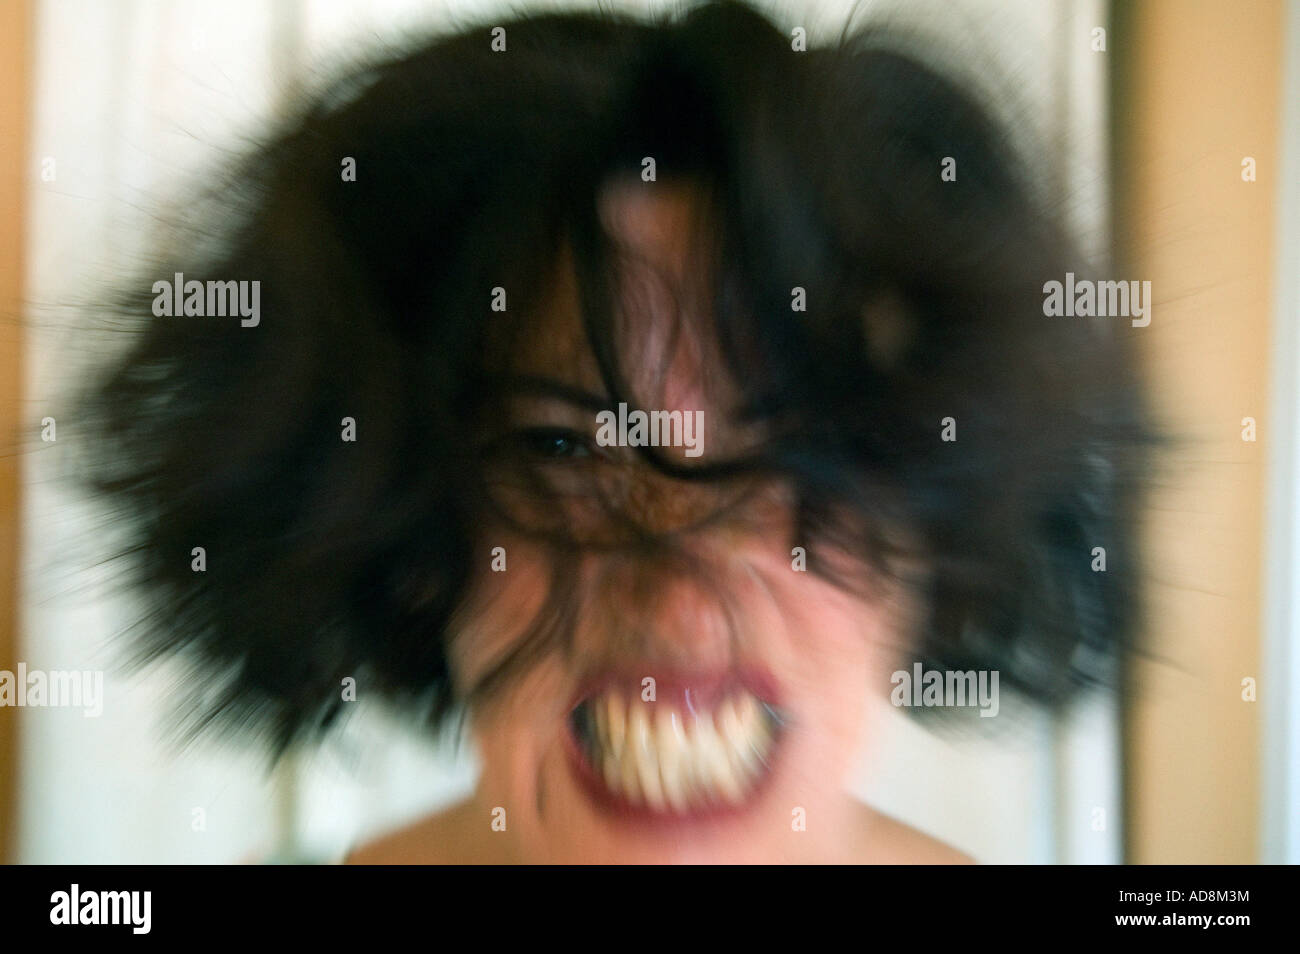 crazed woman with wild hair gritting her teeth - Stock Image